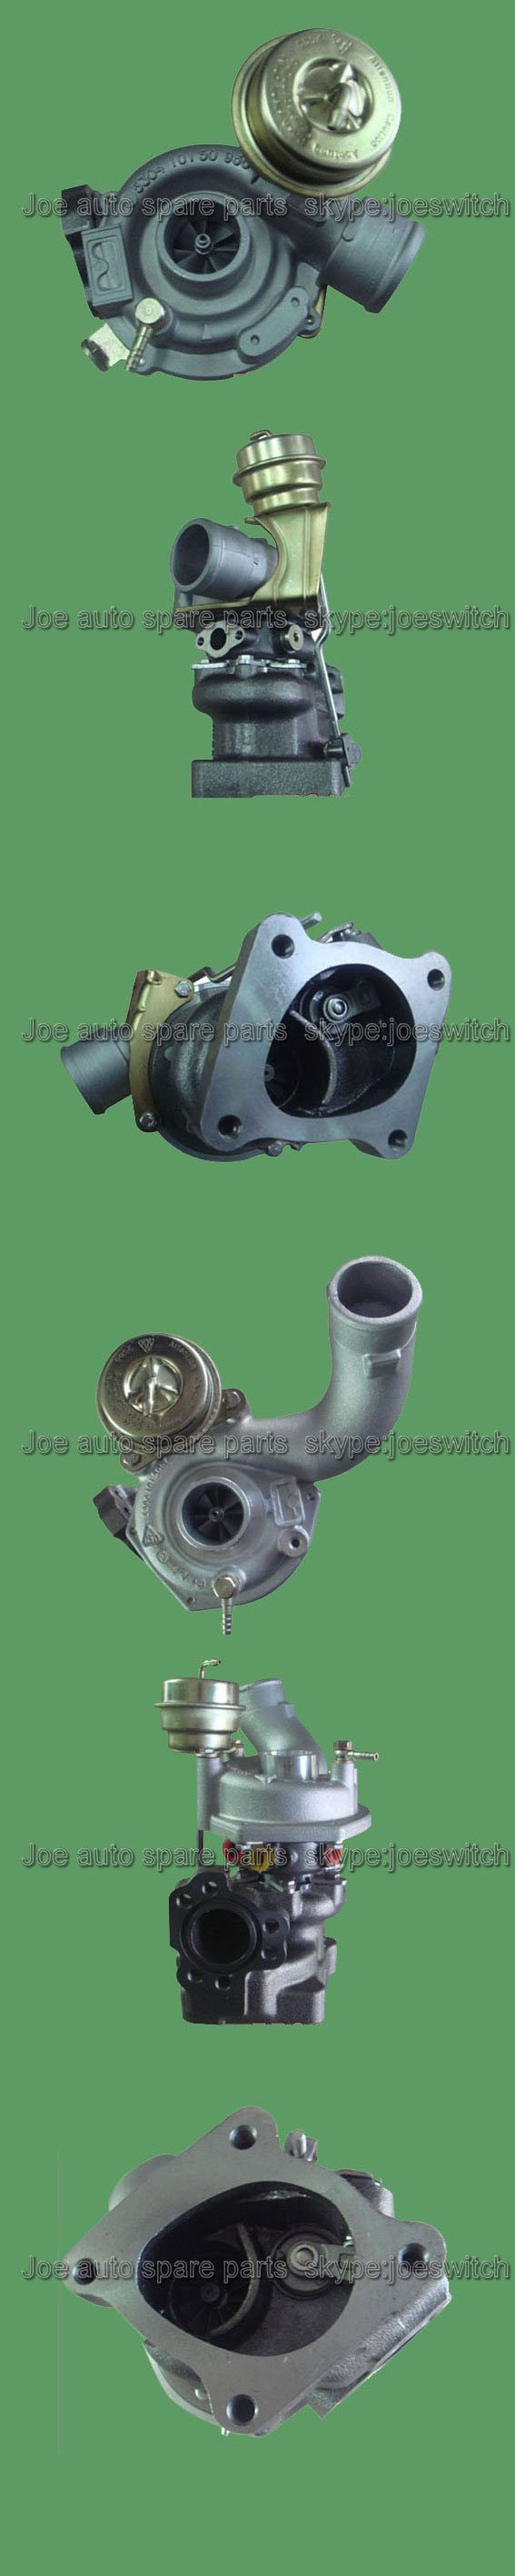 K04 53049880025+53049880026 Turbo Turbocharger For AUDI RS4 EngineASJ AZR 2.7L with gaskets